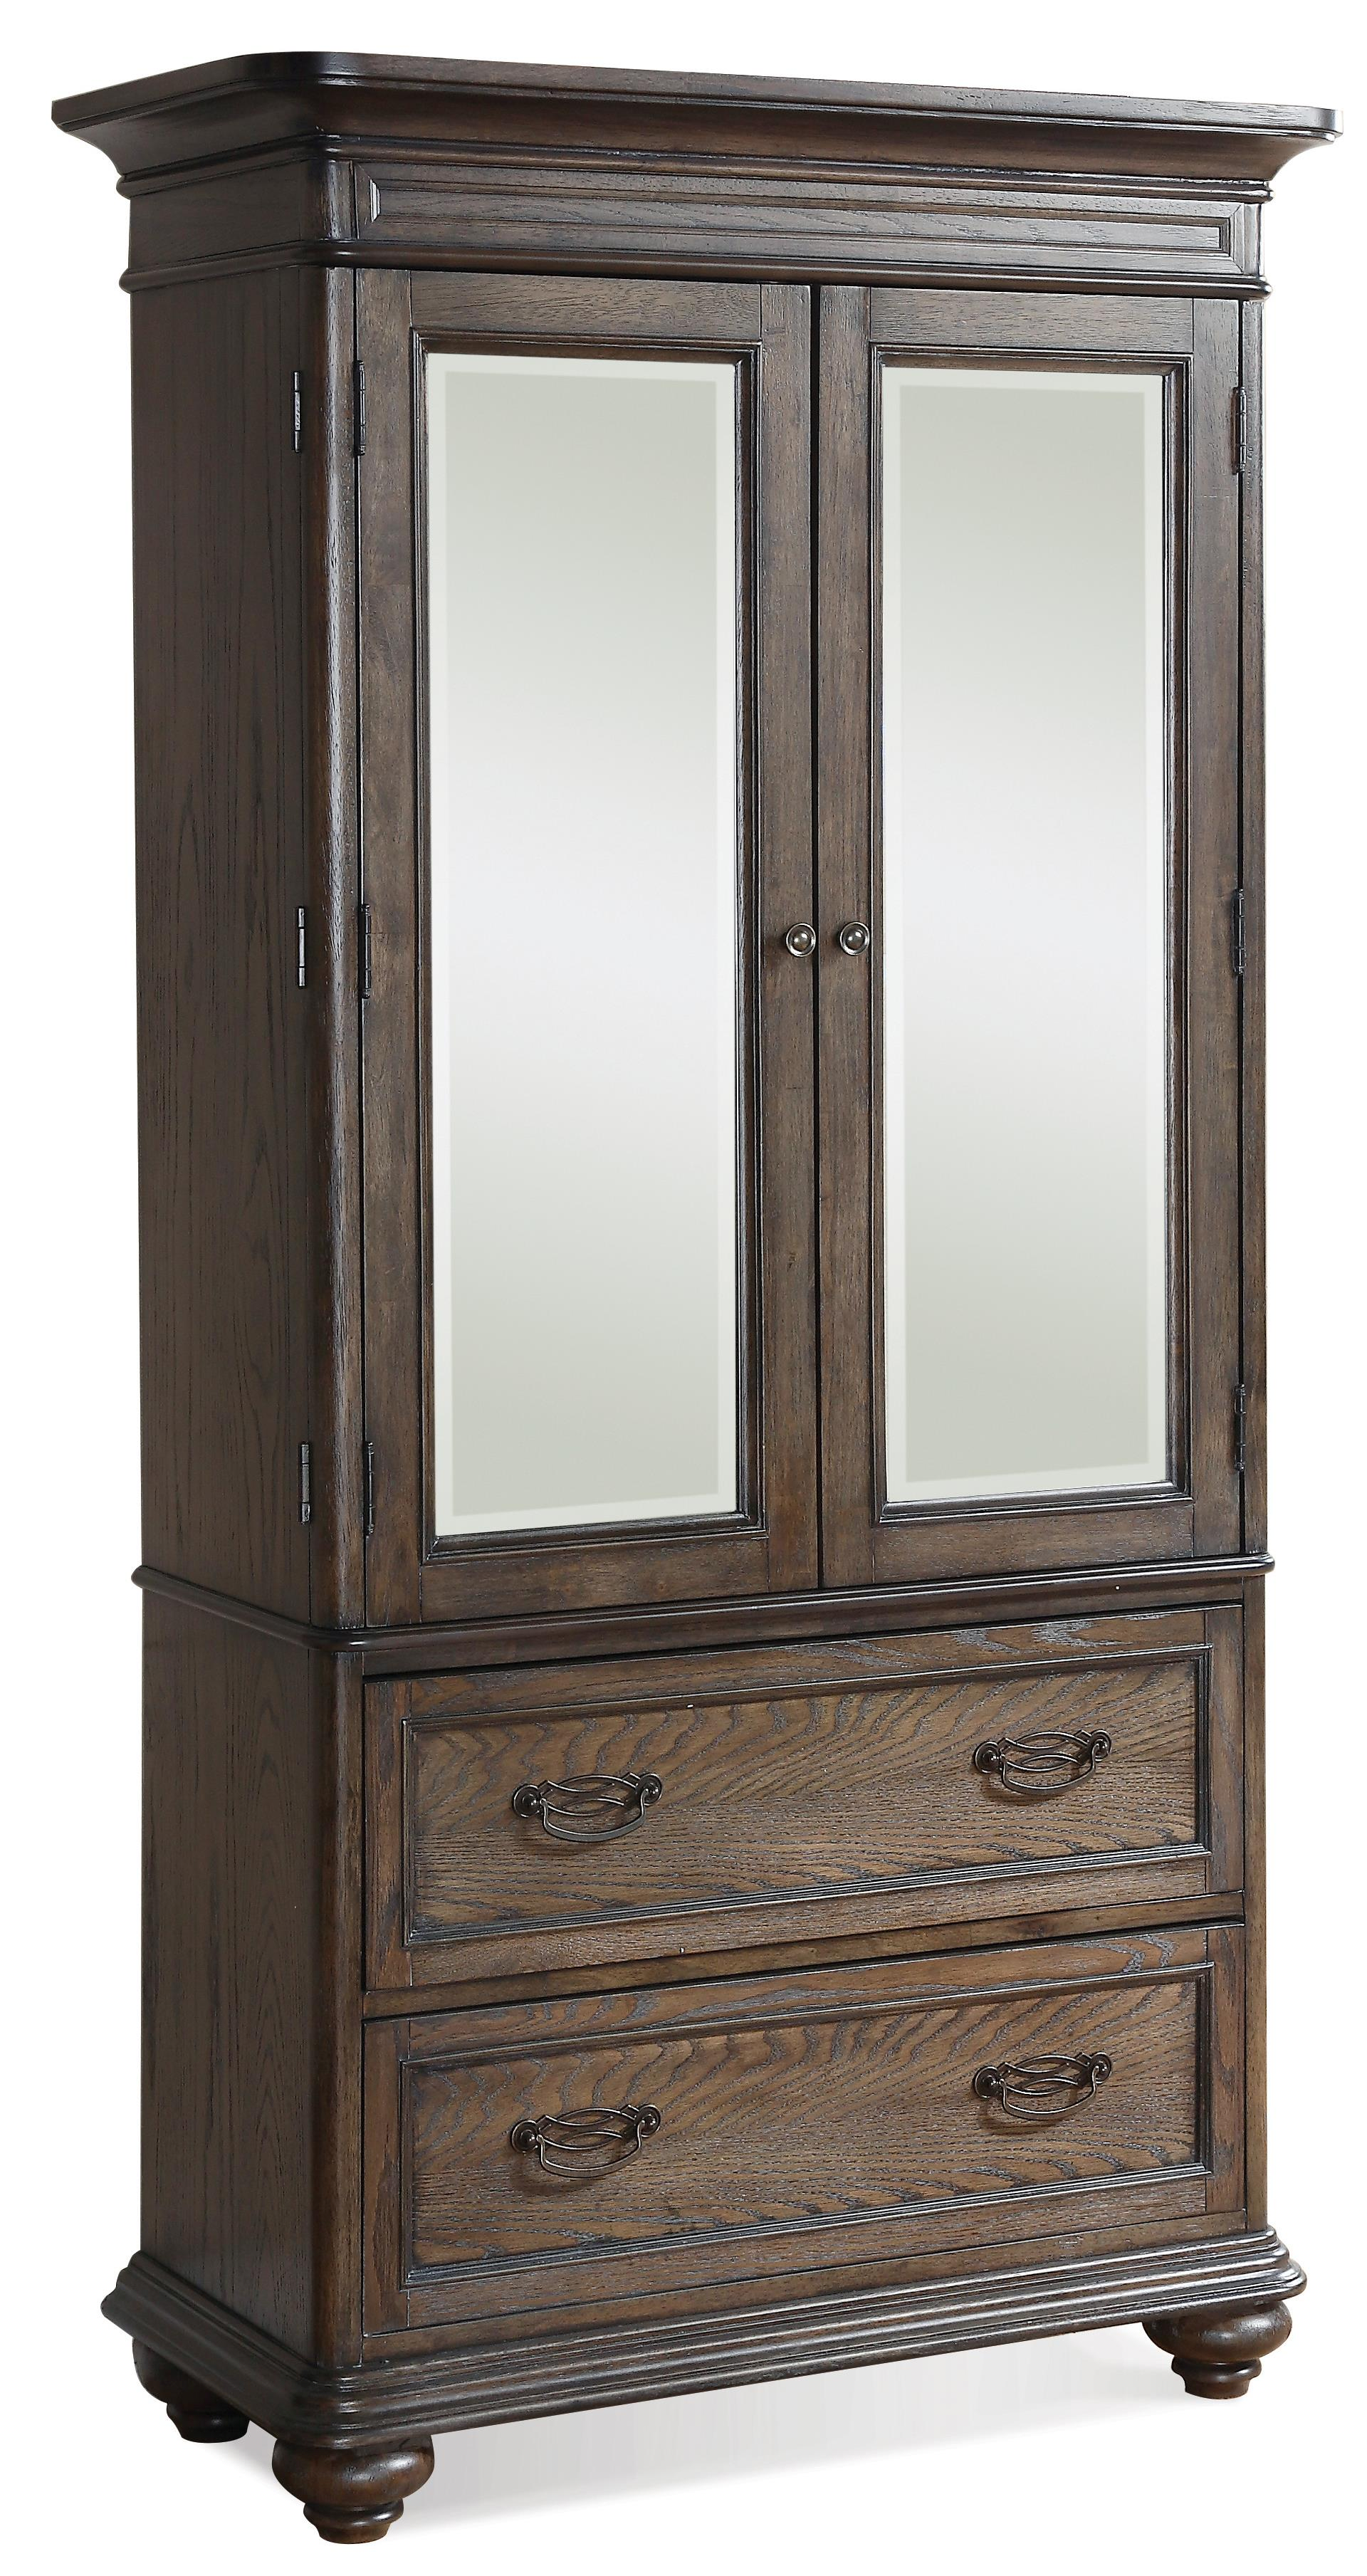 Riverside Furniture Belmeade Armoire - Item Number: 15866